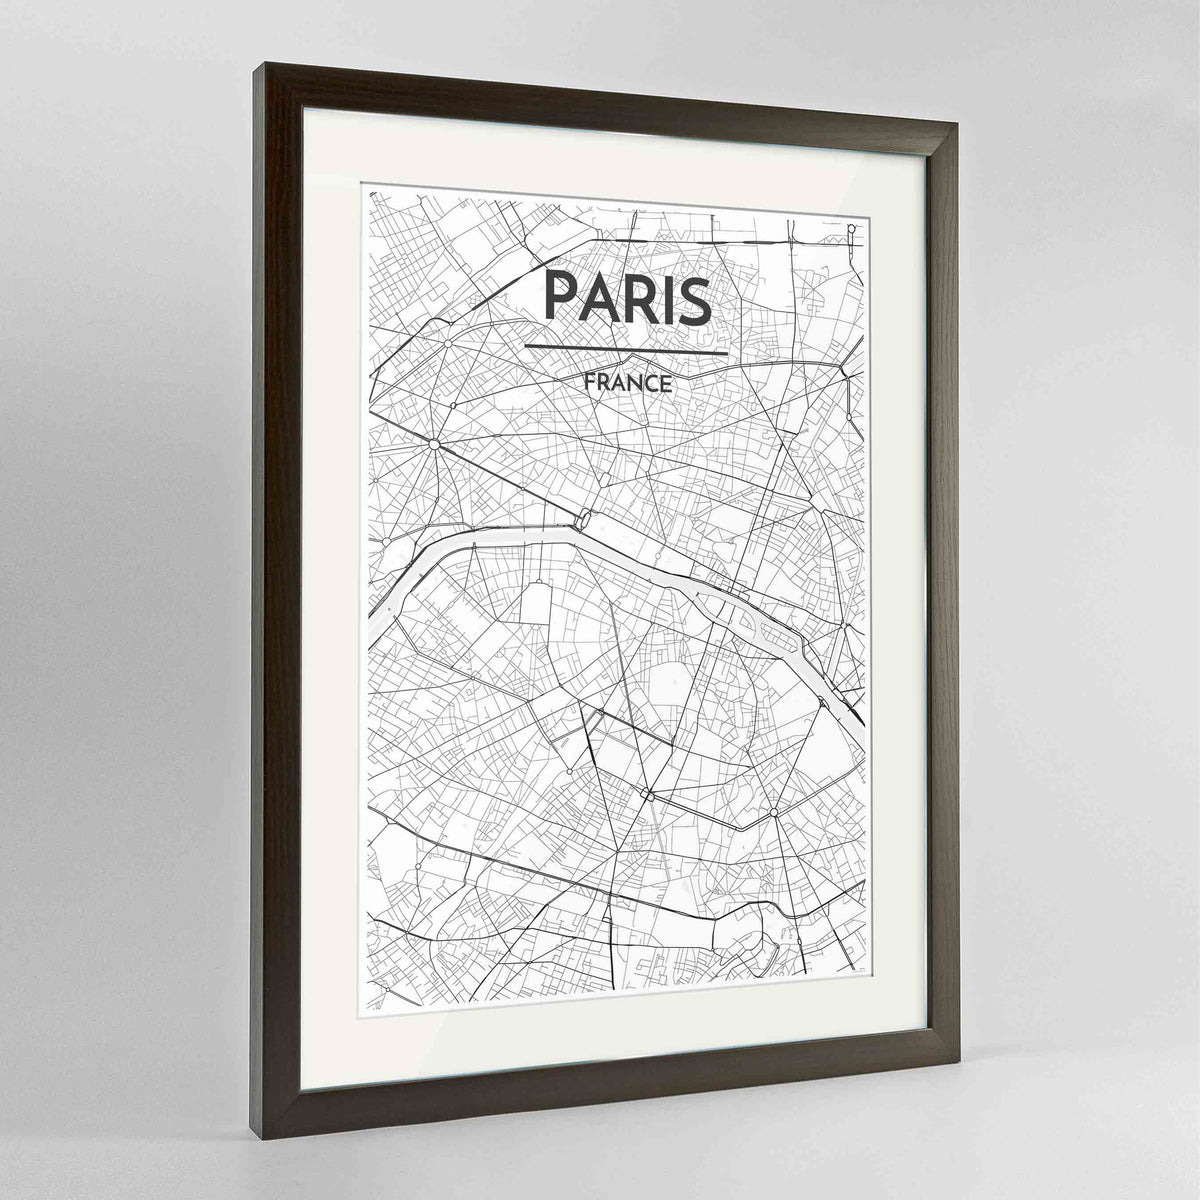 "Framed Paris Map Art Print 24x36"" Contemporary Walnut frame Point Two Design Group"